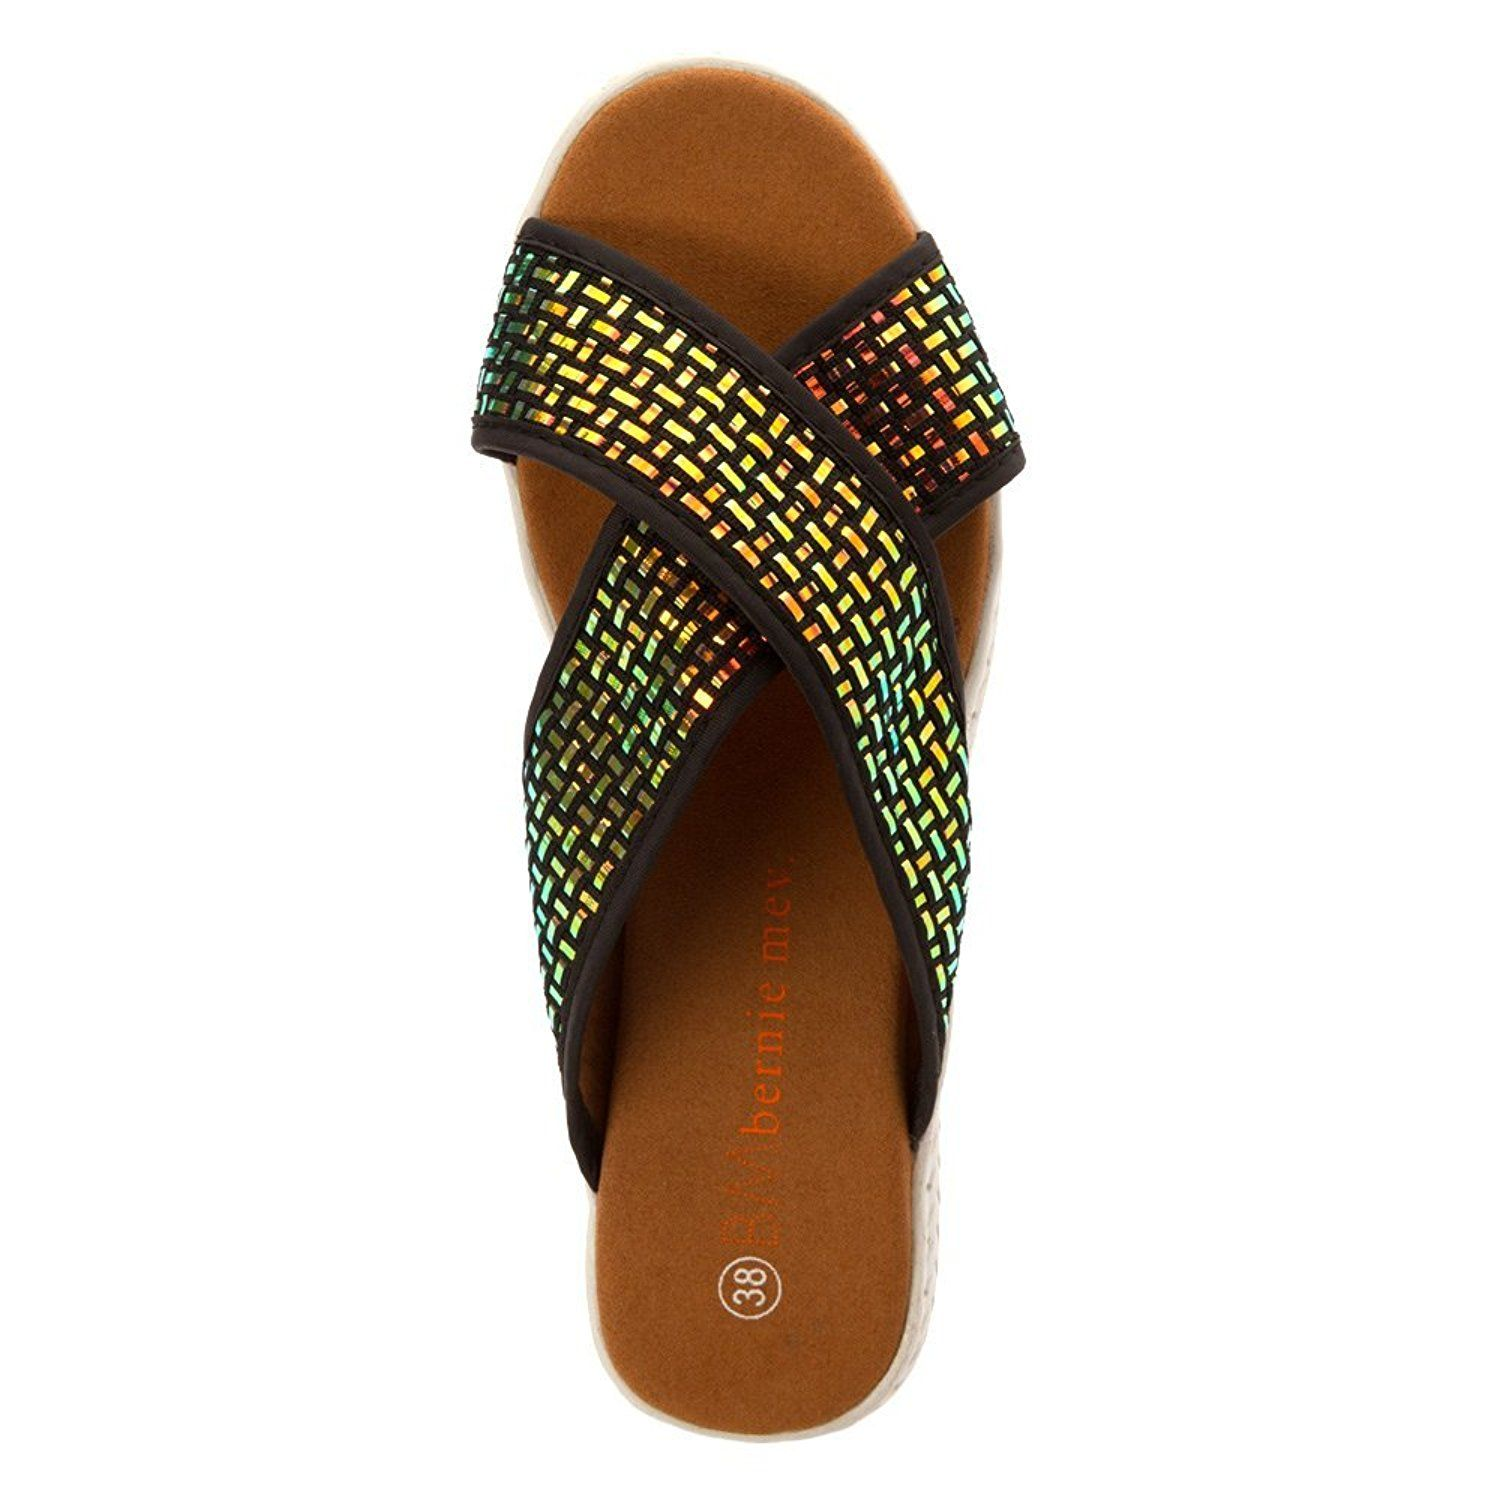 bernie mev women s avon sandals to view further for this item